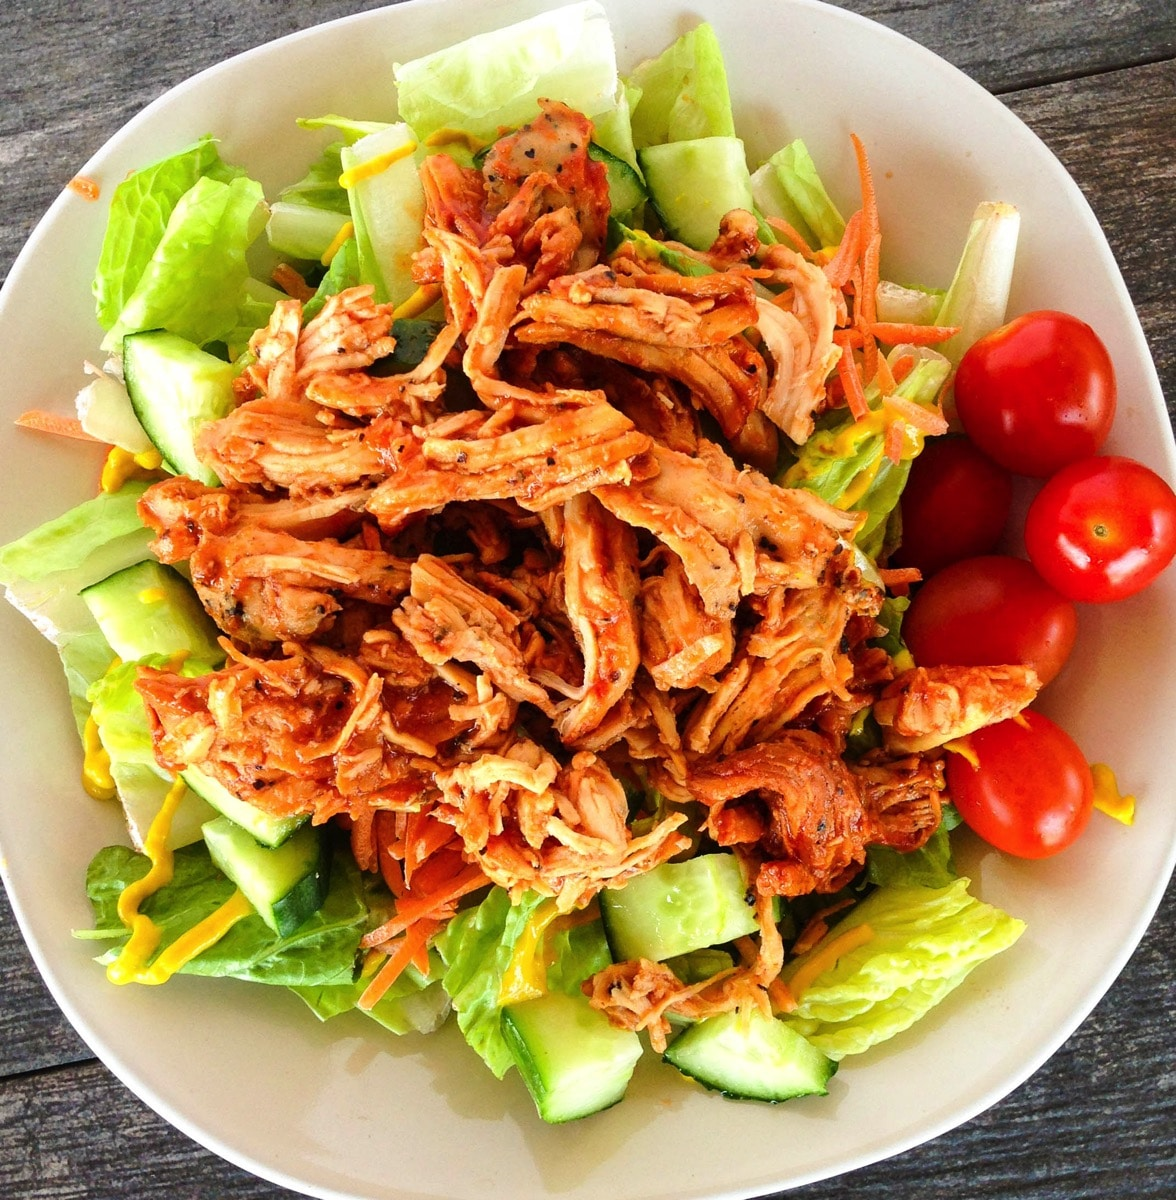 Bbq chicken salad 2433